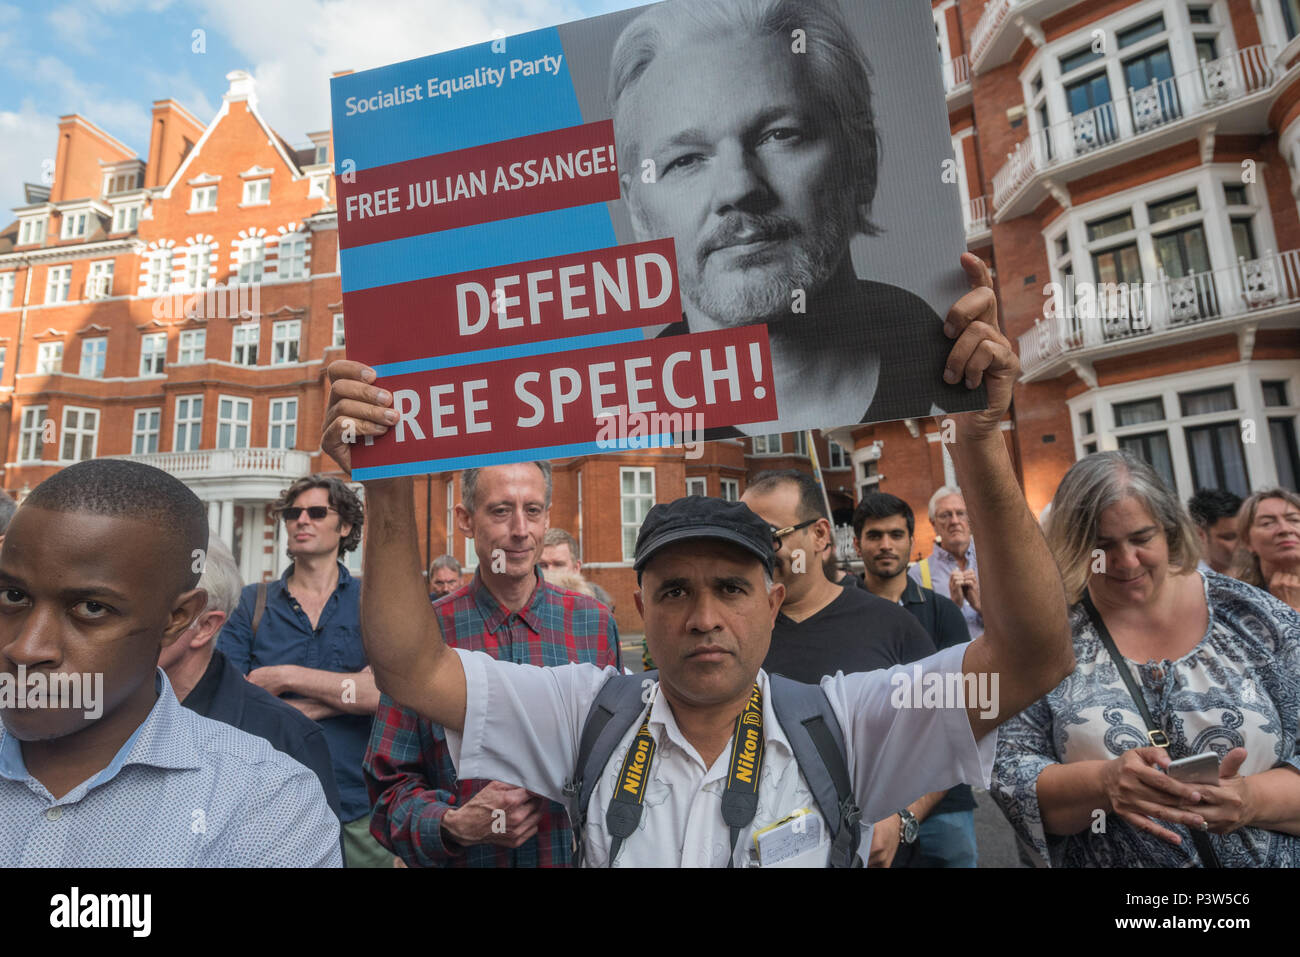 London, UK. 19th June 2018. A man stands in the crown in front of Peter Tatchell holding up a poster at the rally outside the Ecuadorian Embassy in London calling for Julian Assange to be allowed safe passage to the place of his choice to mark six years since he was given asylum there. They called for the UK authorities to allow him to leave the embassy and go to the country of his choice without being arrested. Credit: Peter Marshall/Alamy Live News - Stock Image